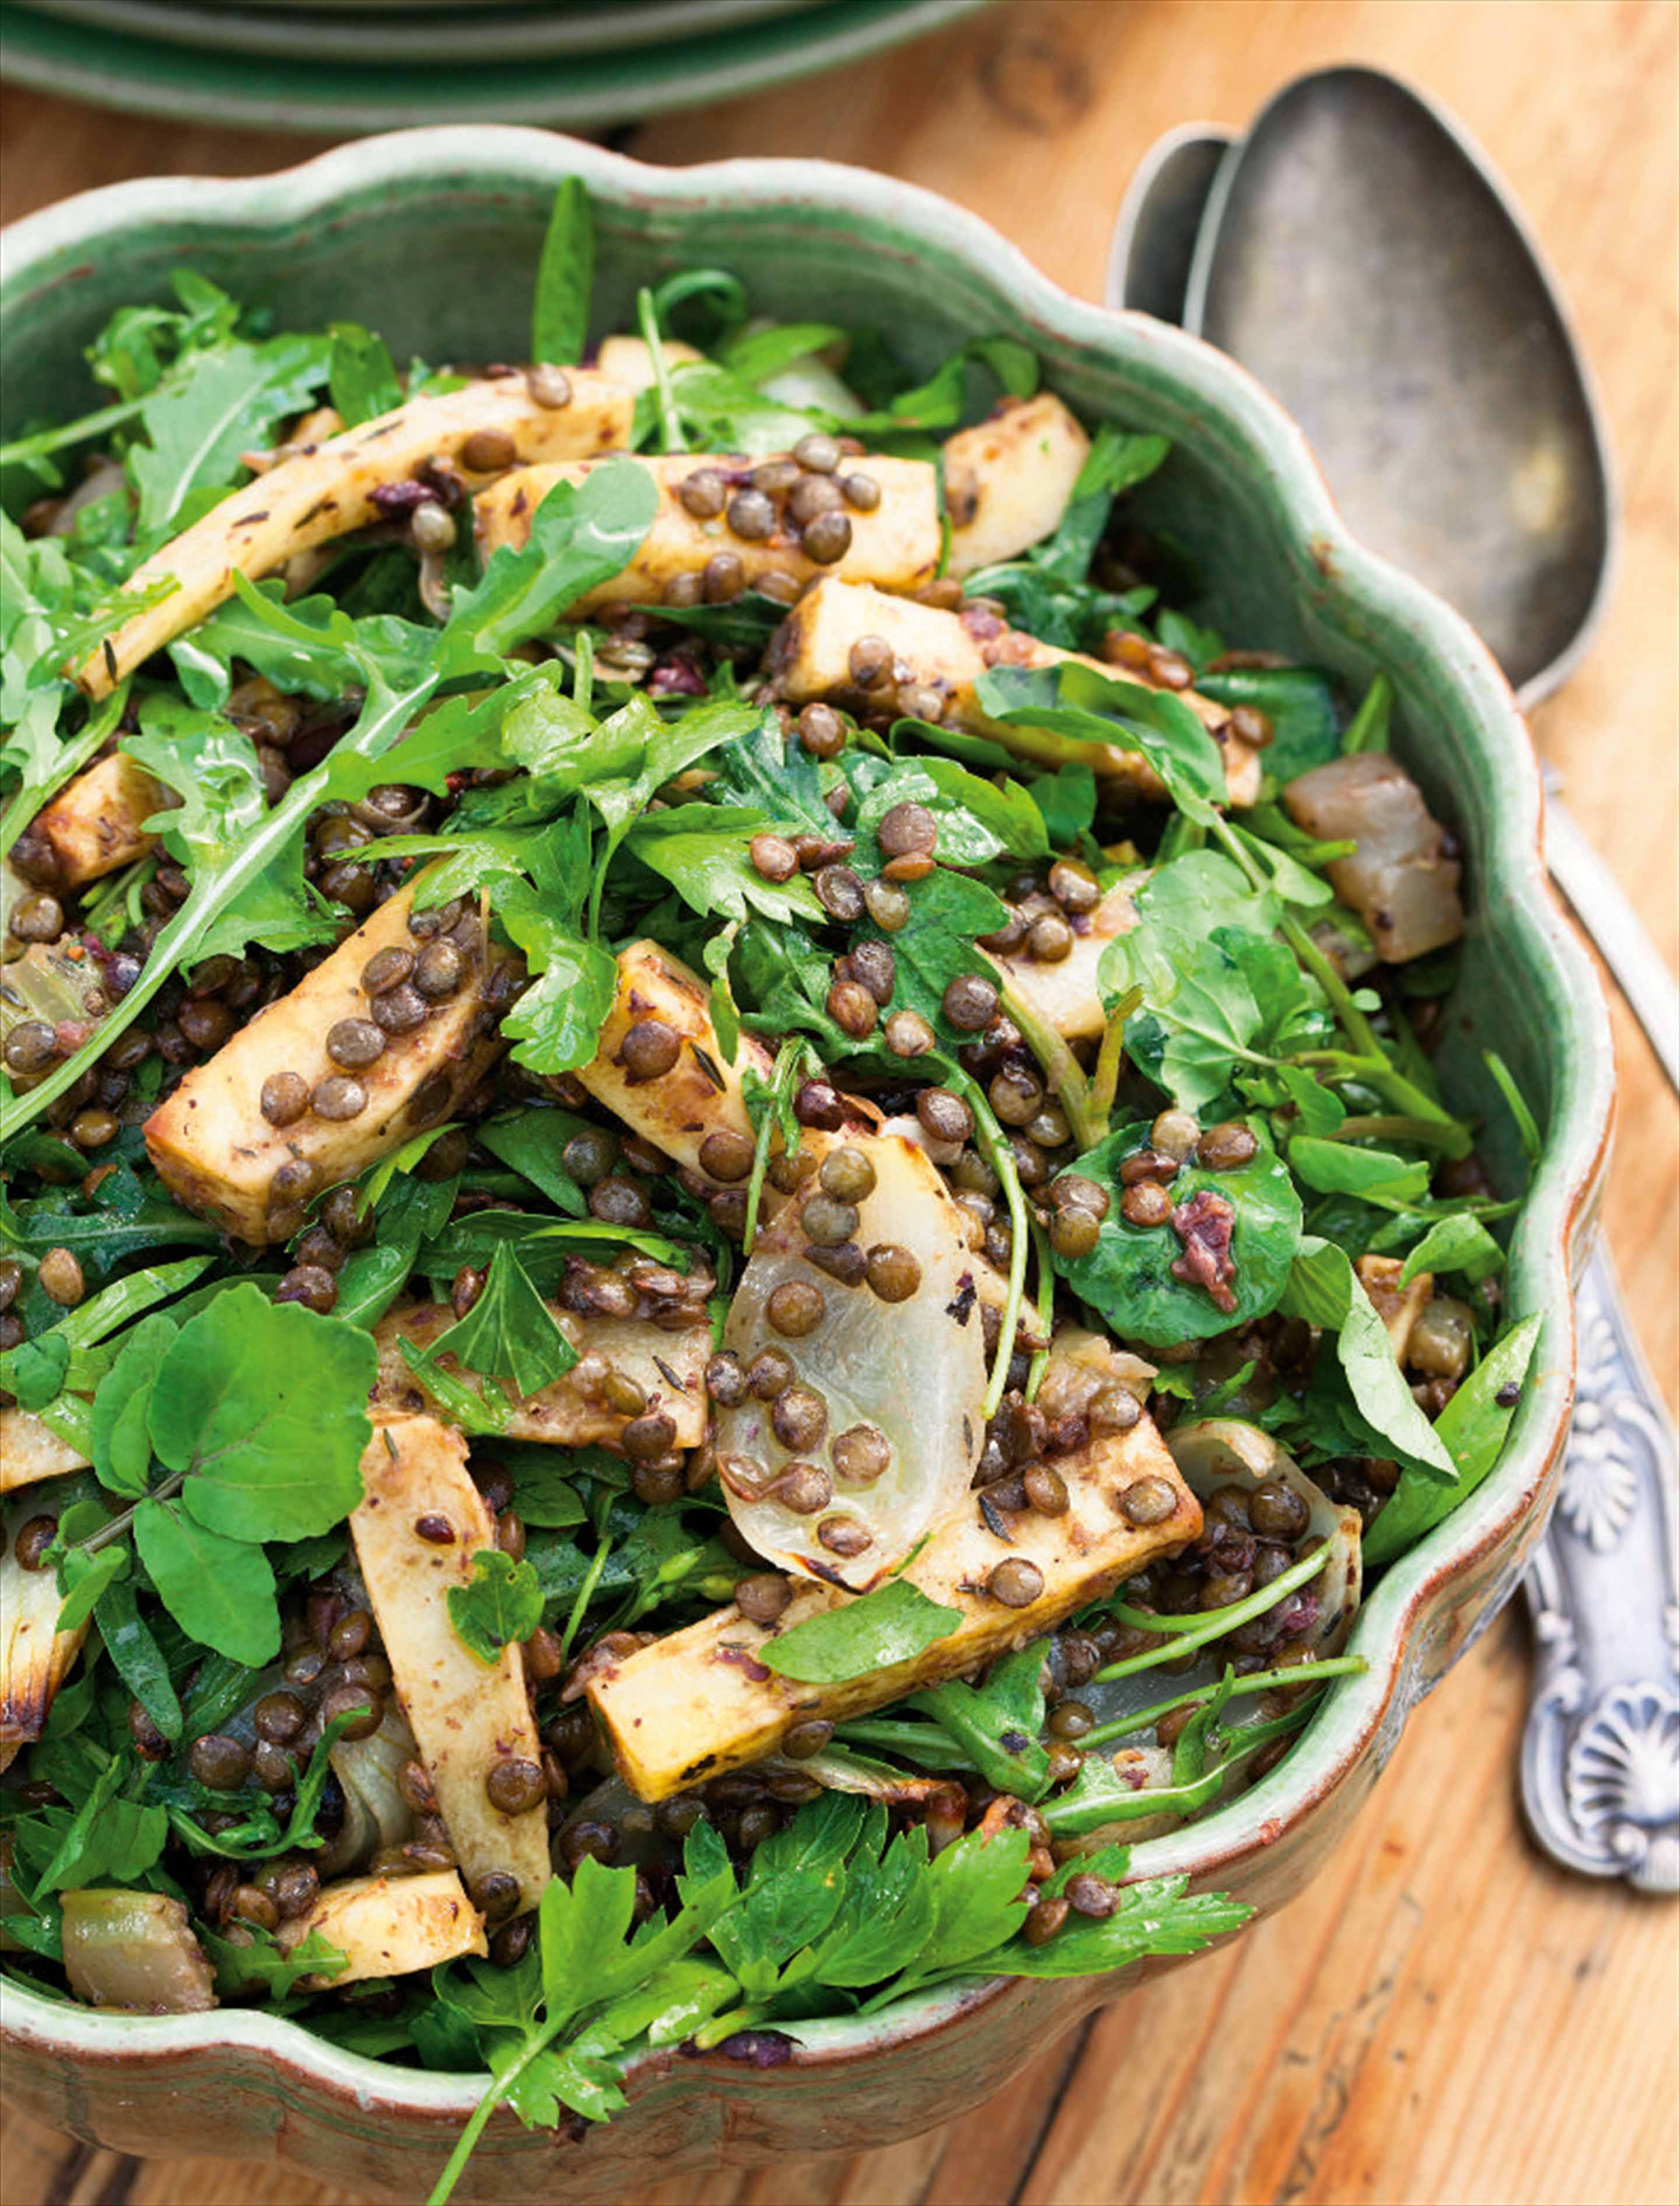 Parsnip, rocket and lentil salad with tapenade dressing